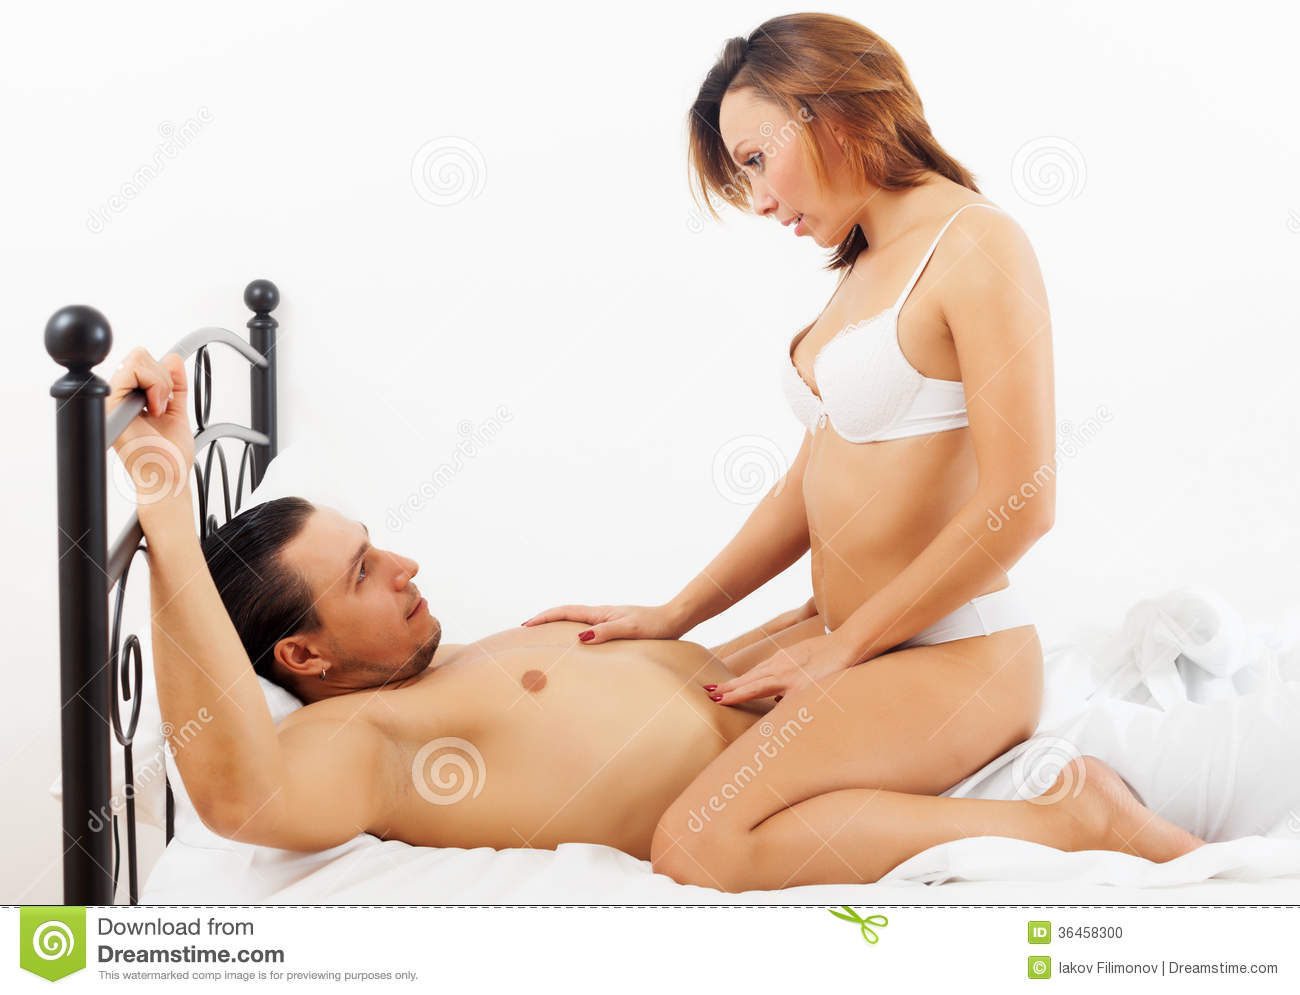 crazy porn sex positions